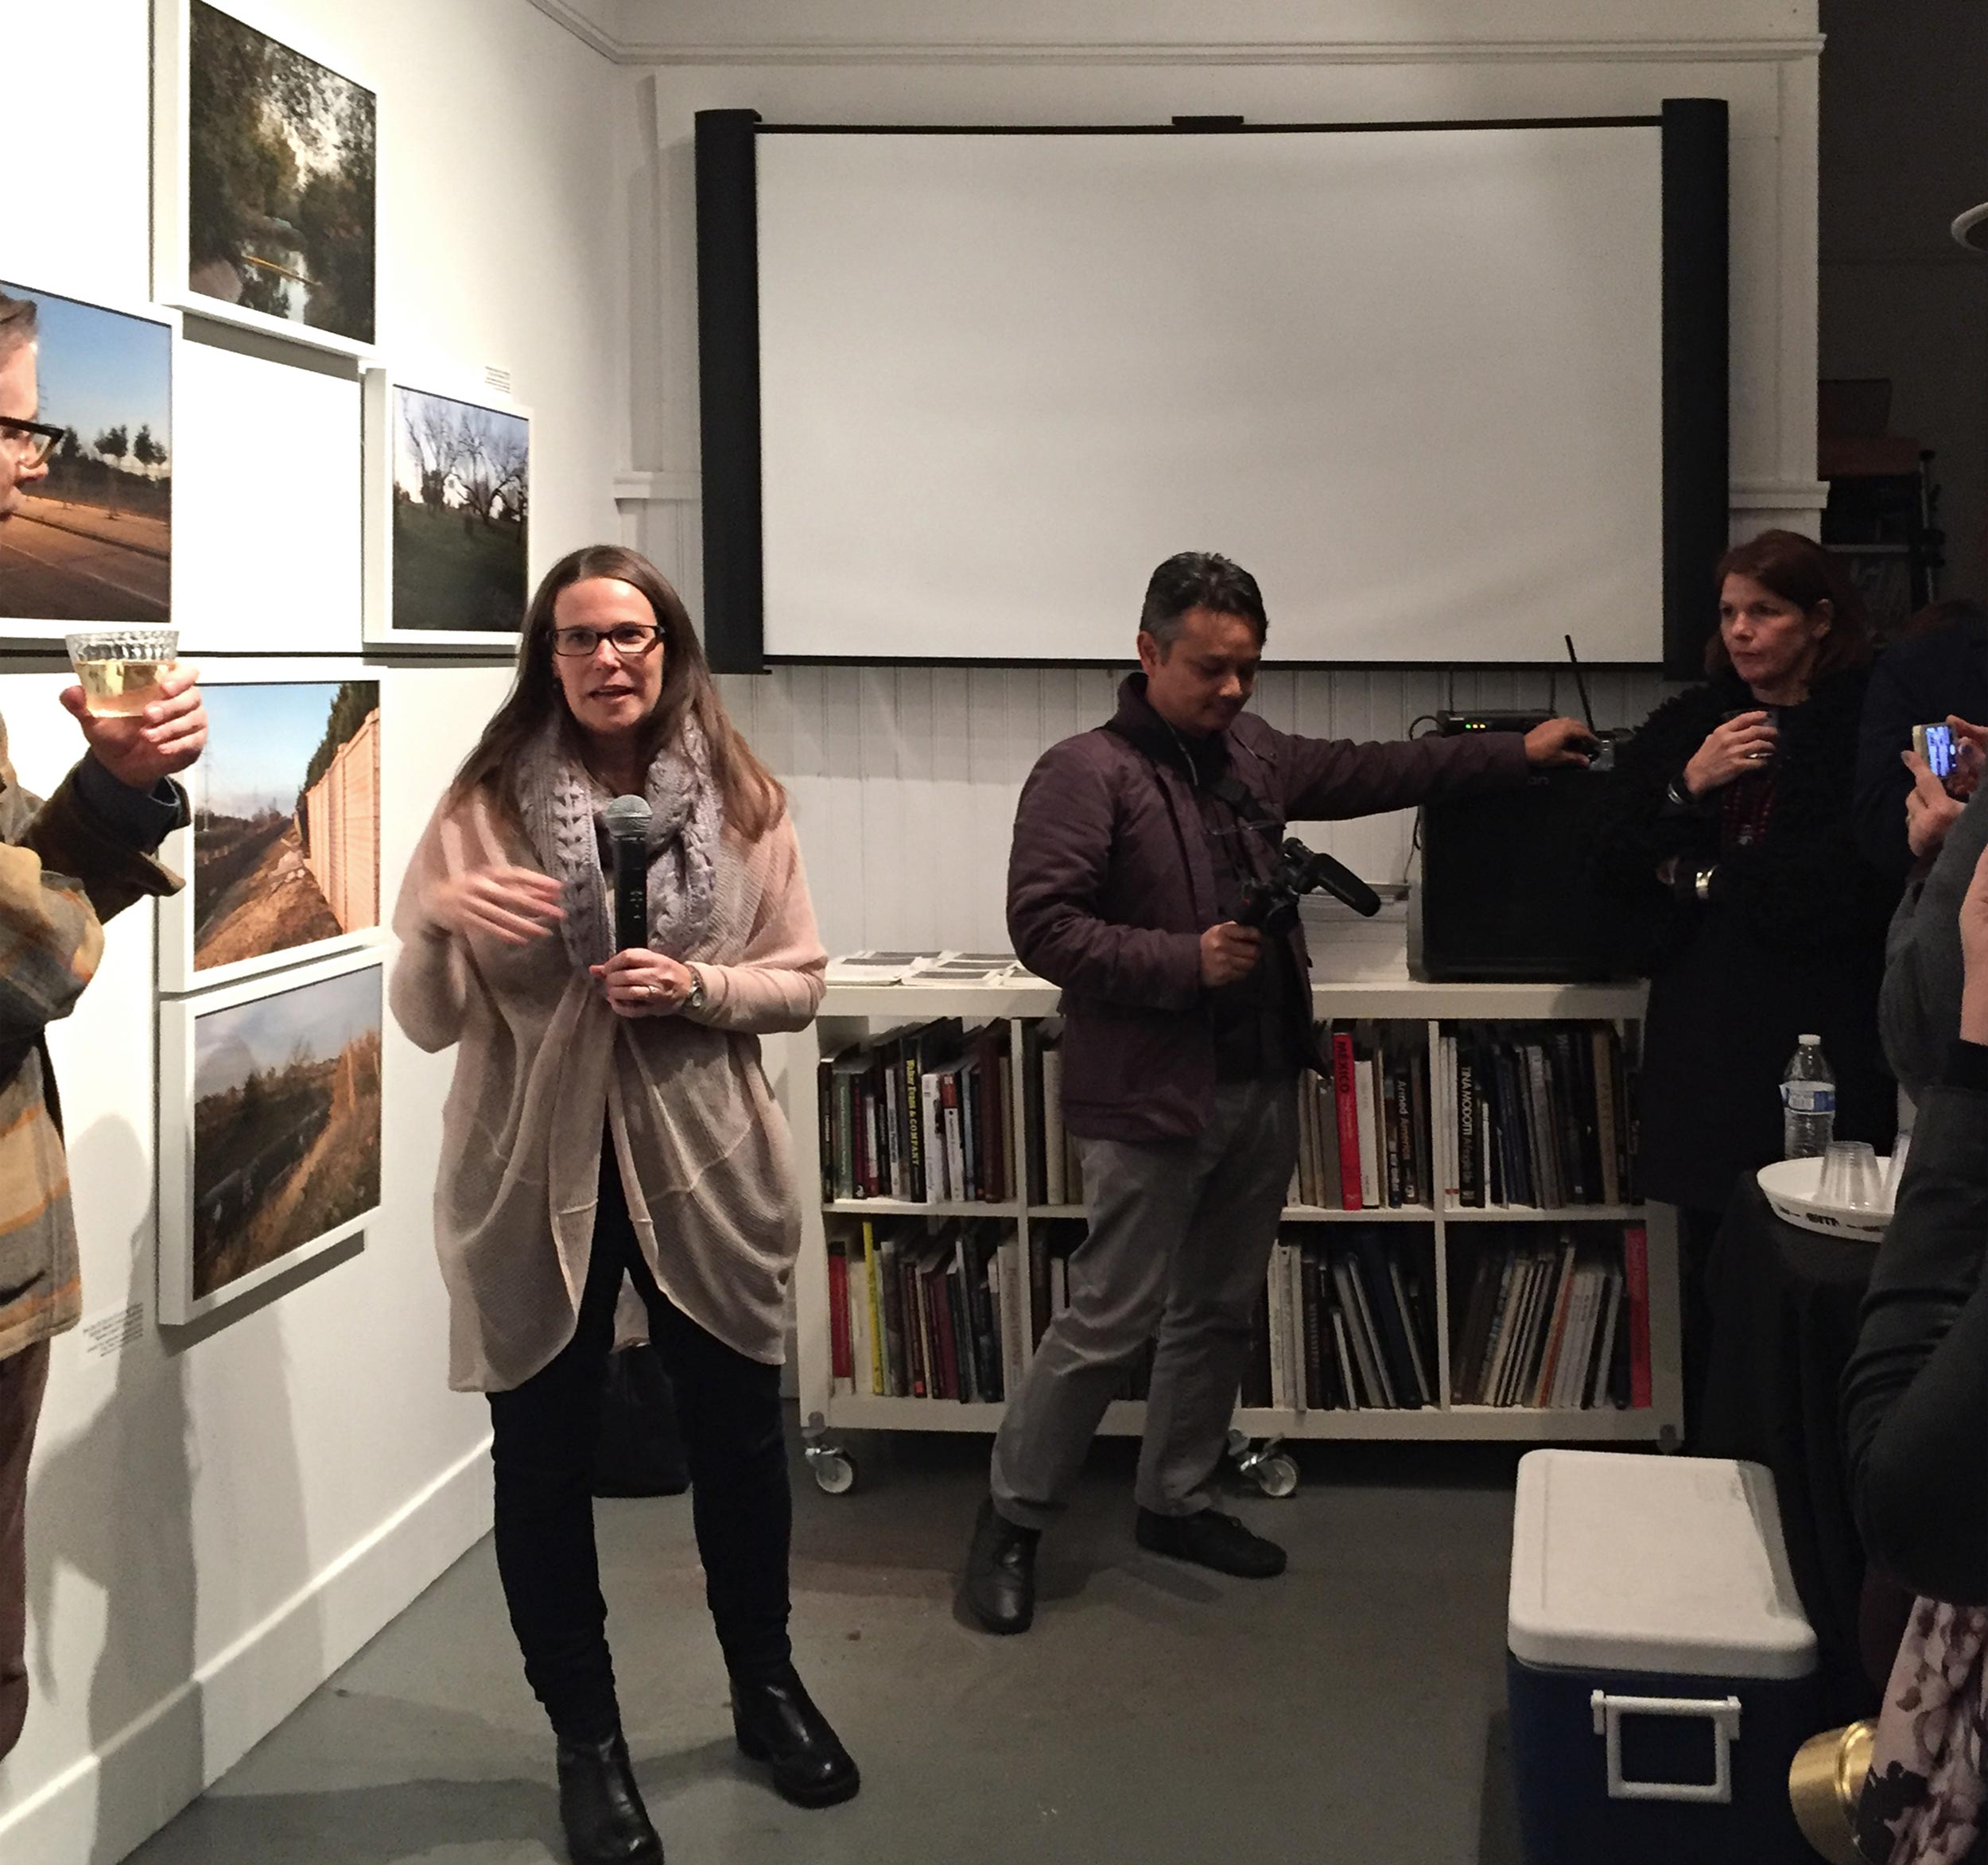 Artist Talk for    TWO PROJECTS: An Overview     at The New Orleans Photo Alliance Gallery during PhotoNOLA 2016.